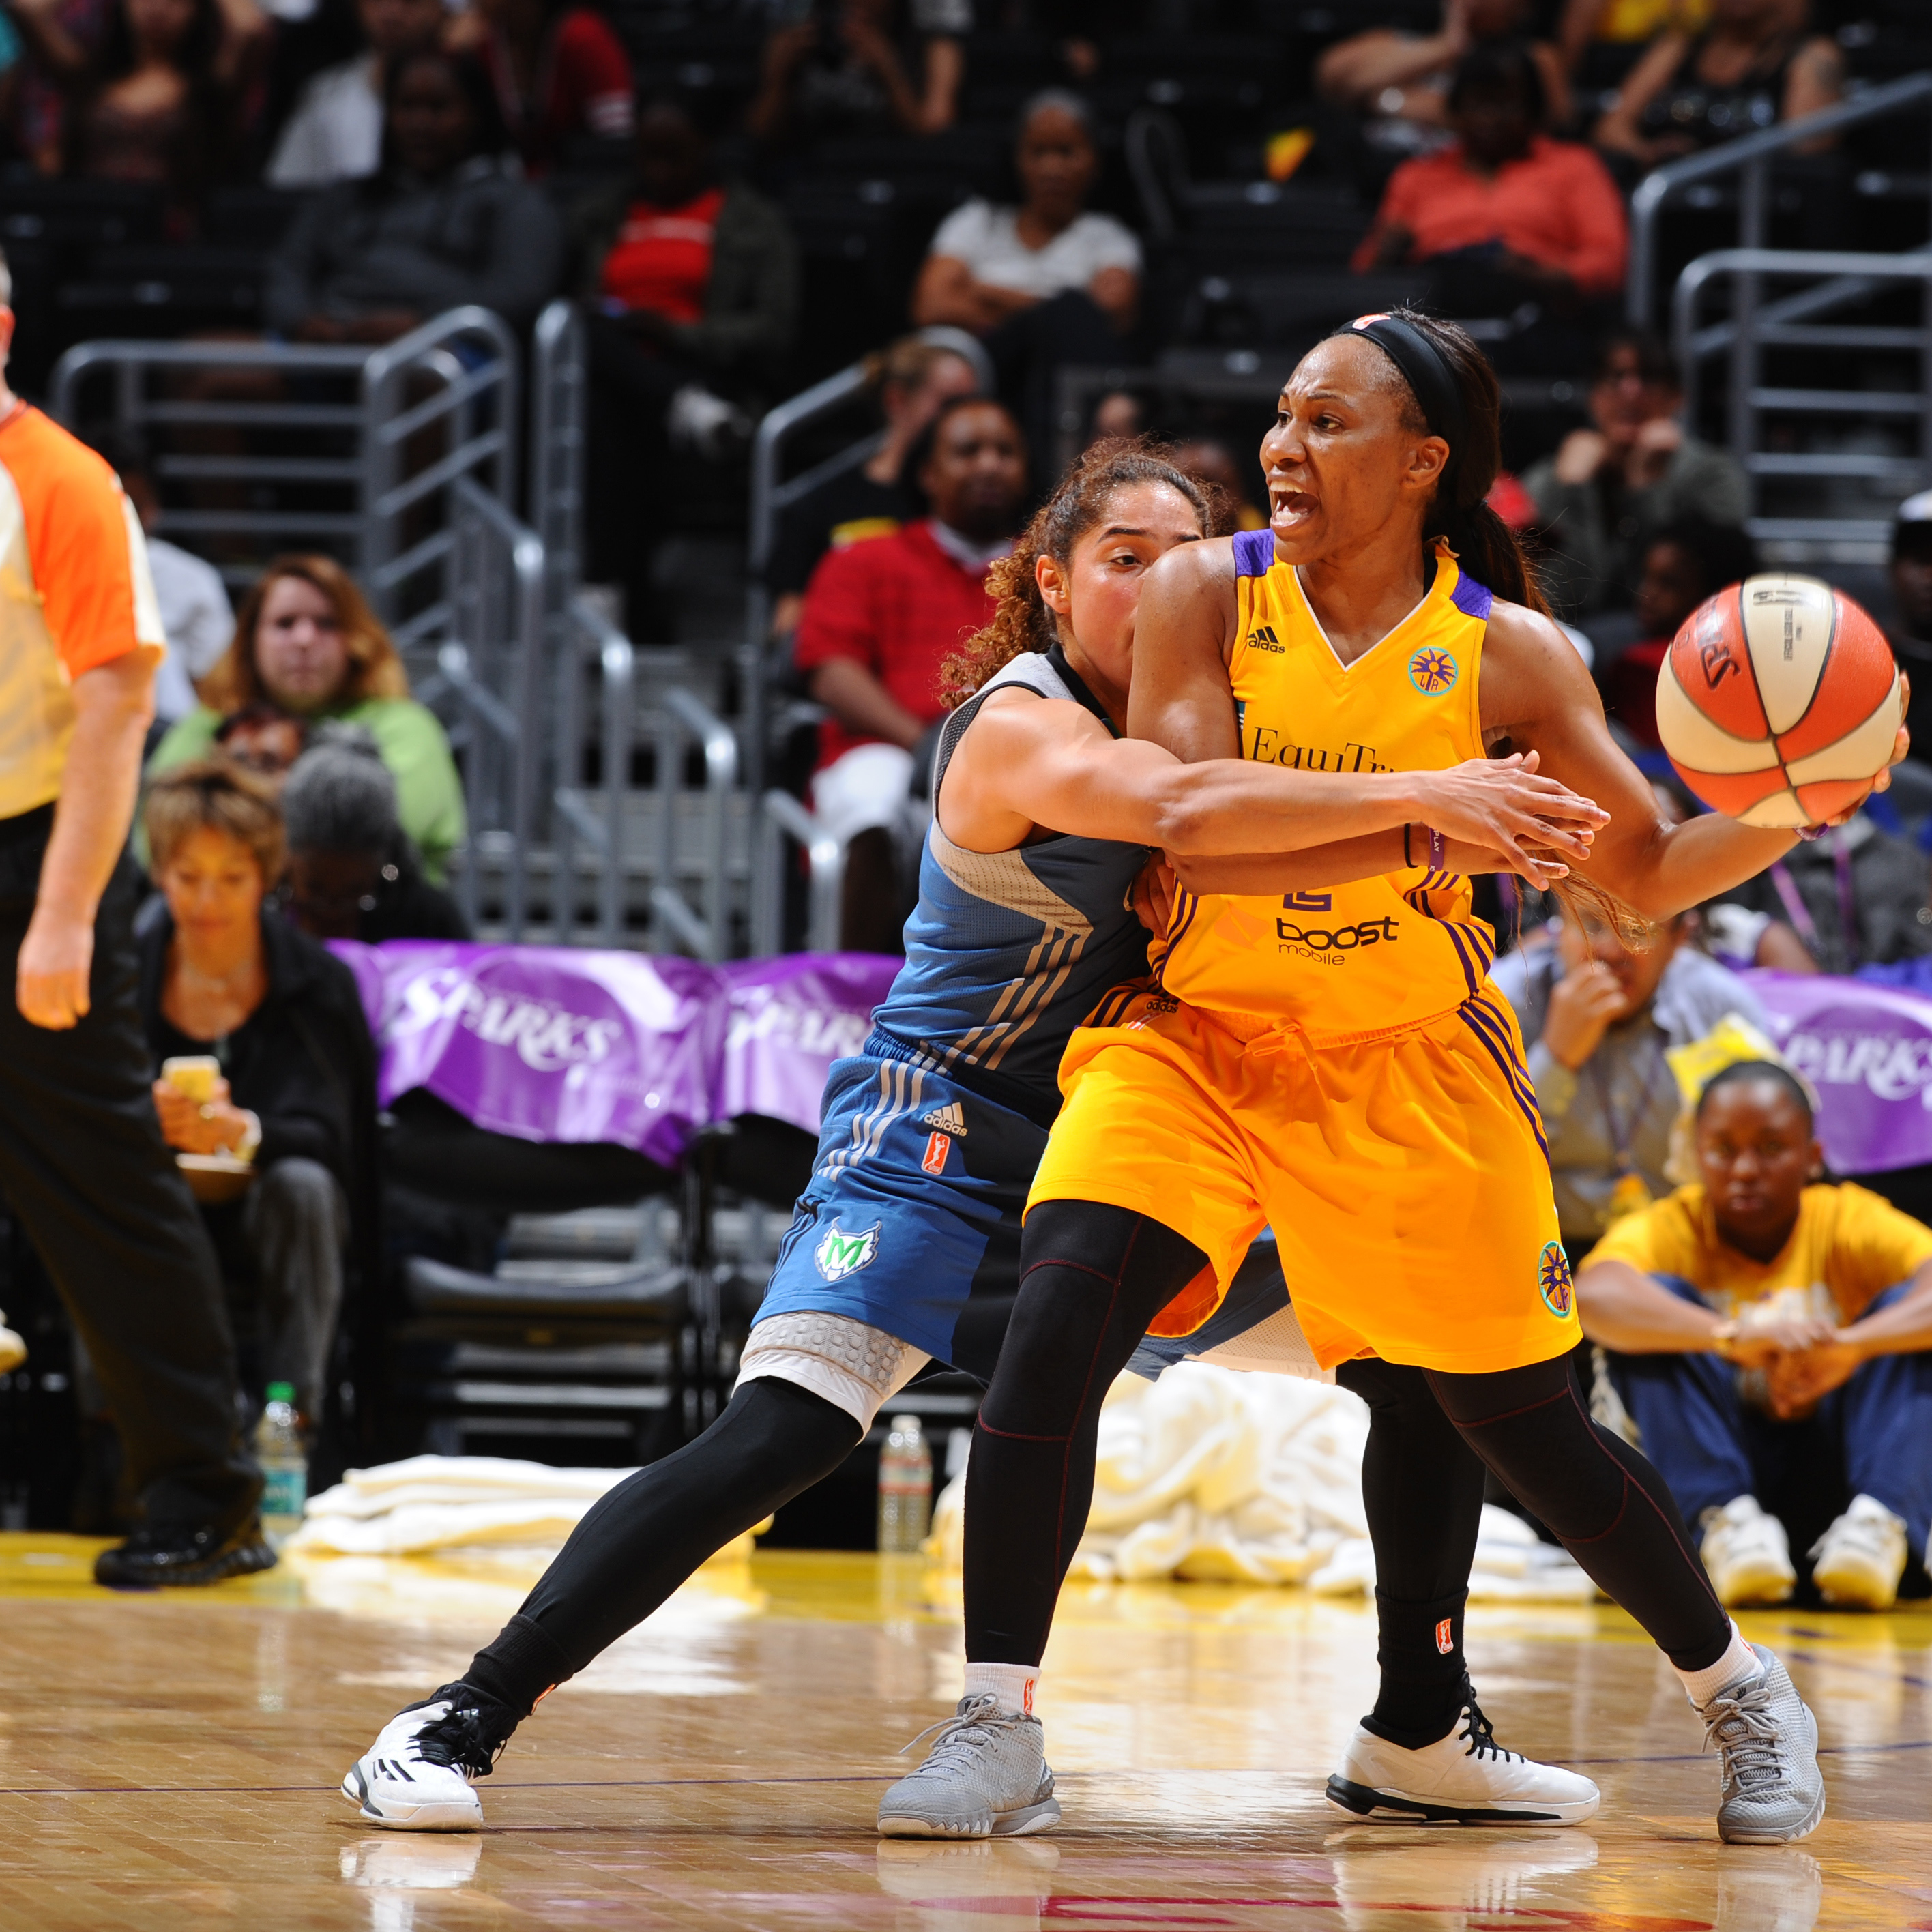 Sparks guard Temeka Johnson came off the bench and, despite only shooting 3-of-12 (25 percent) and scoring six points, added seven assists and three rebounds in the loss.